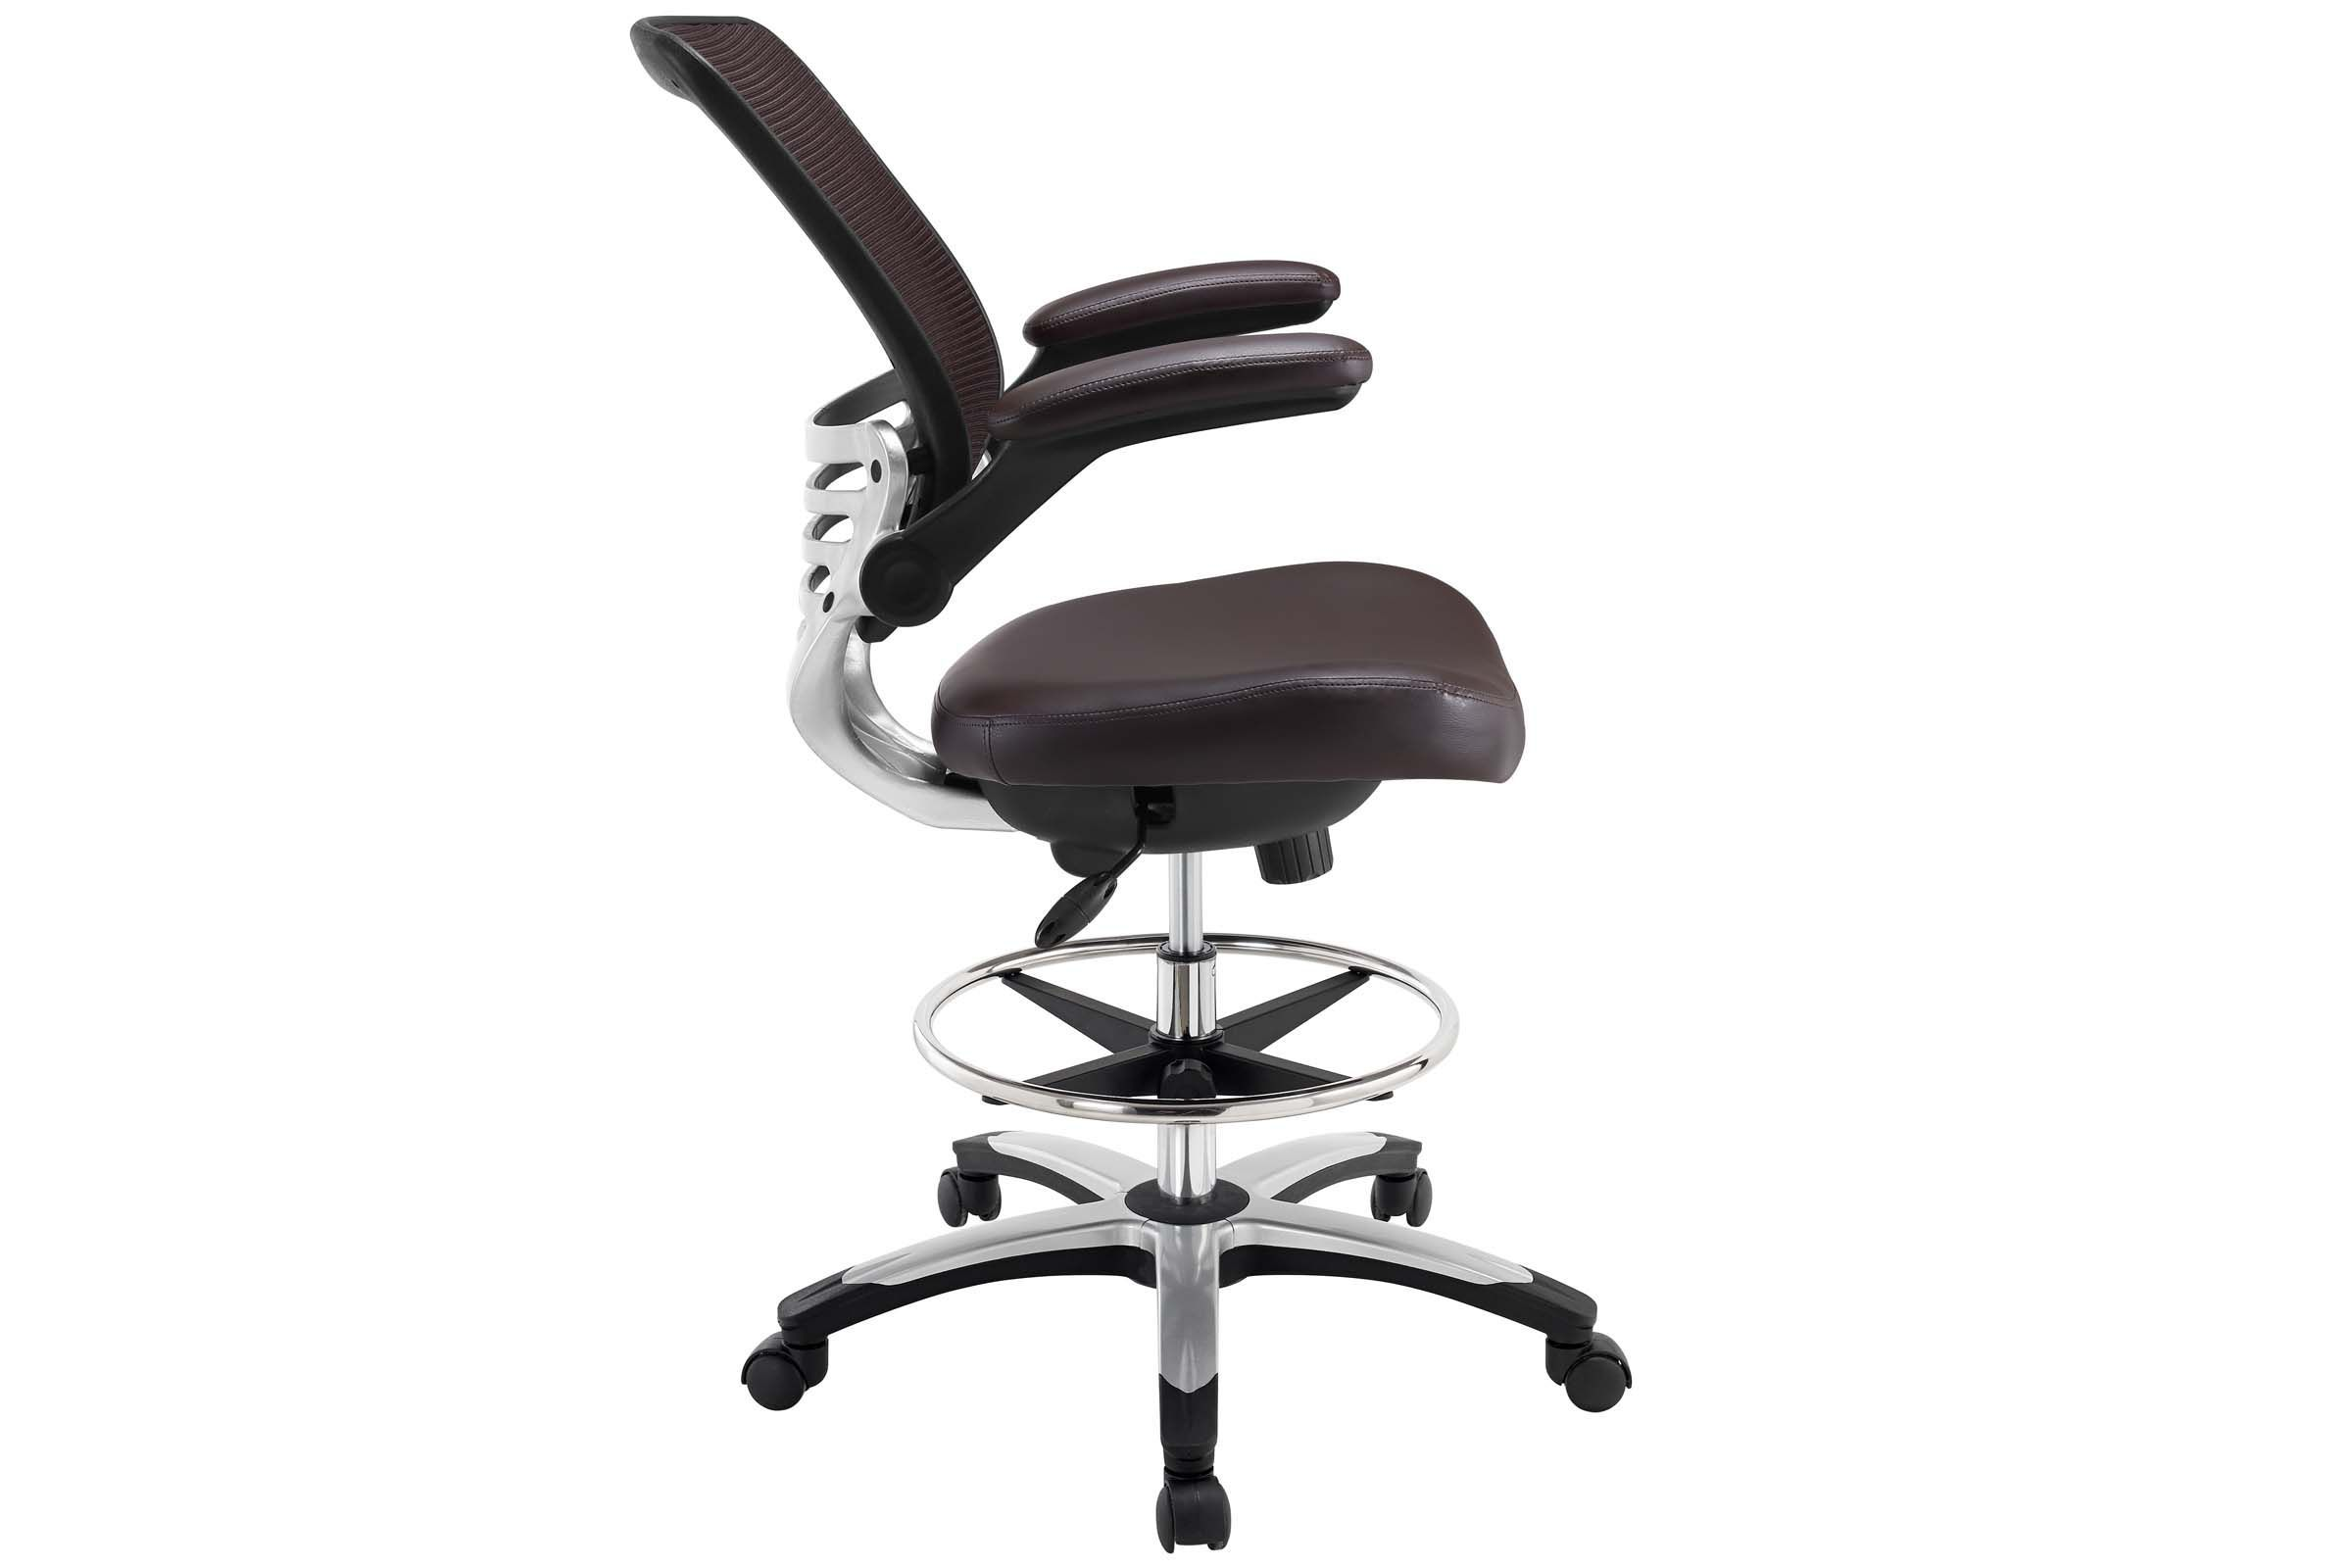 Edge drafting chair in brown by modway in 2020 drafting